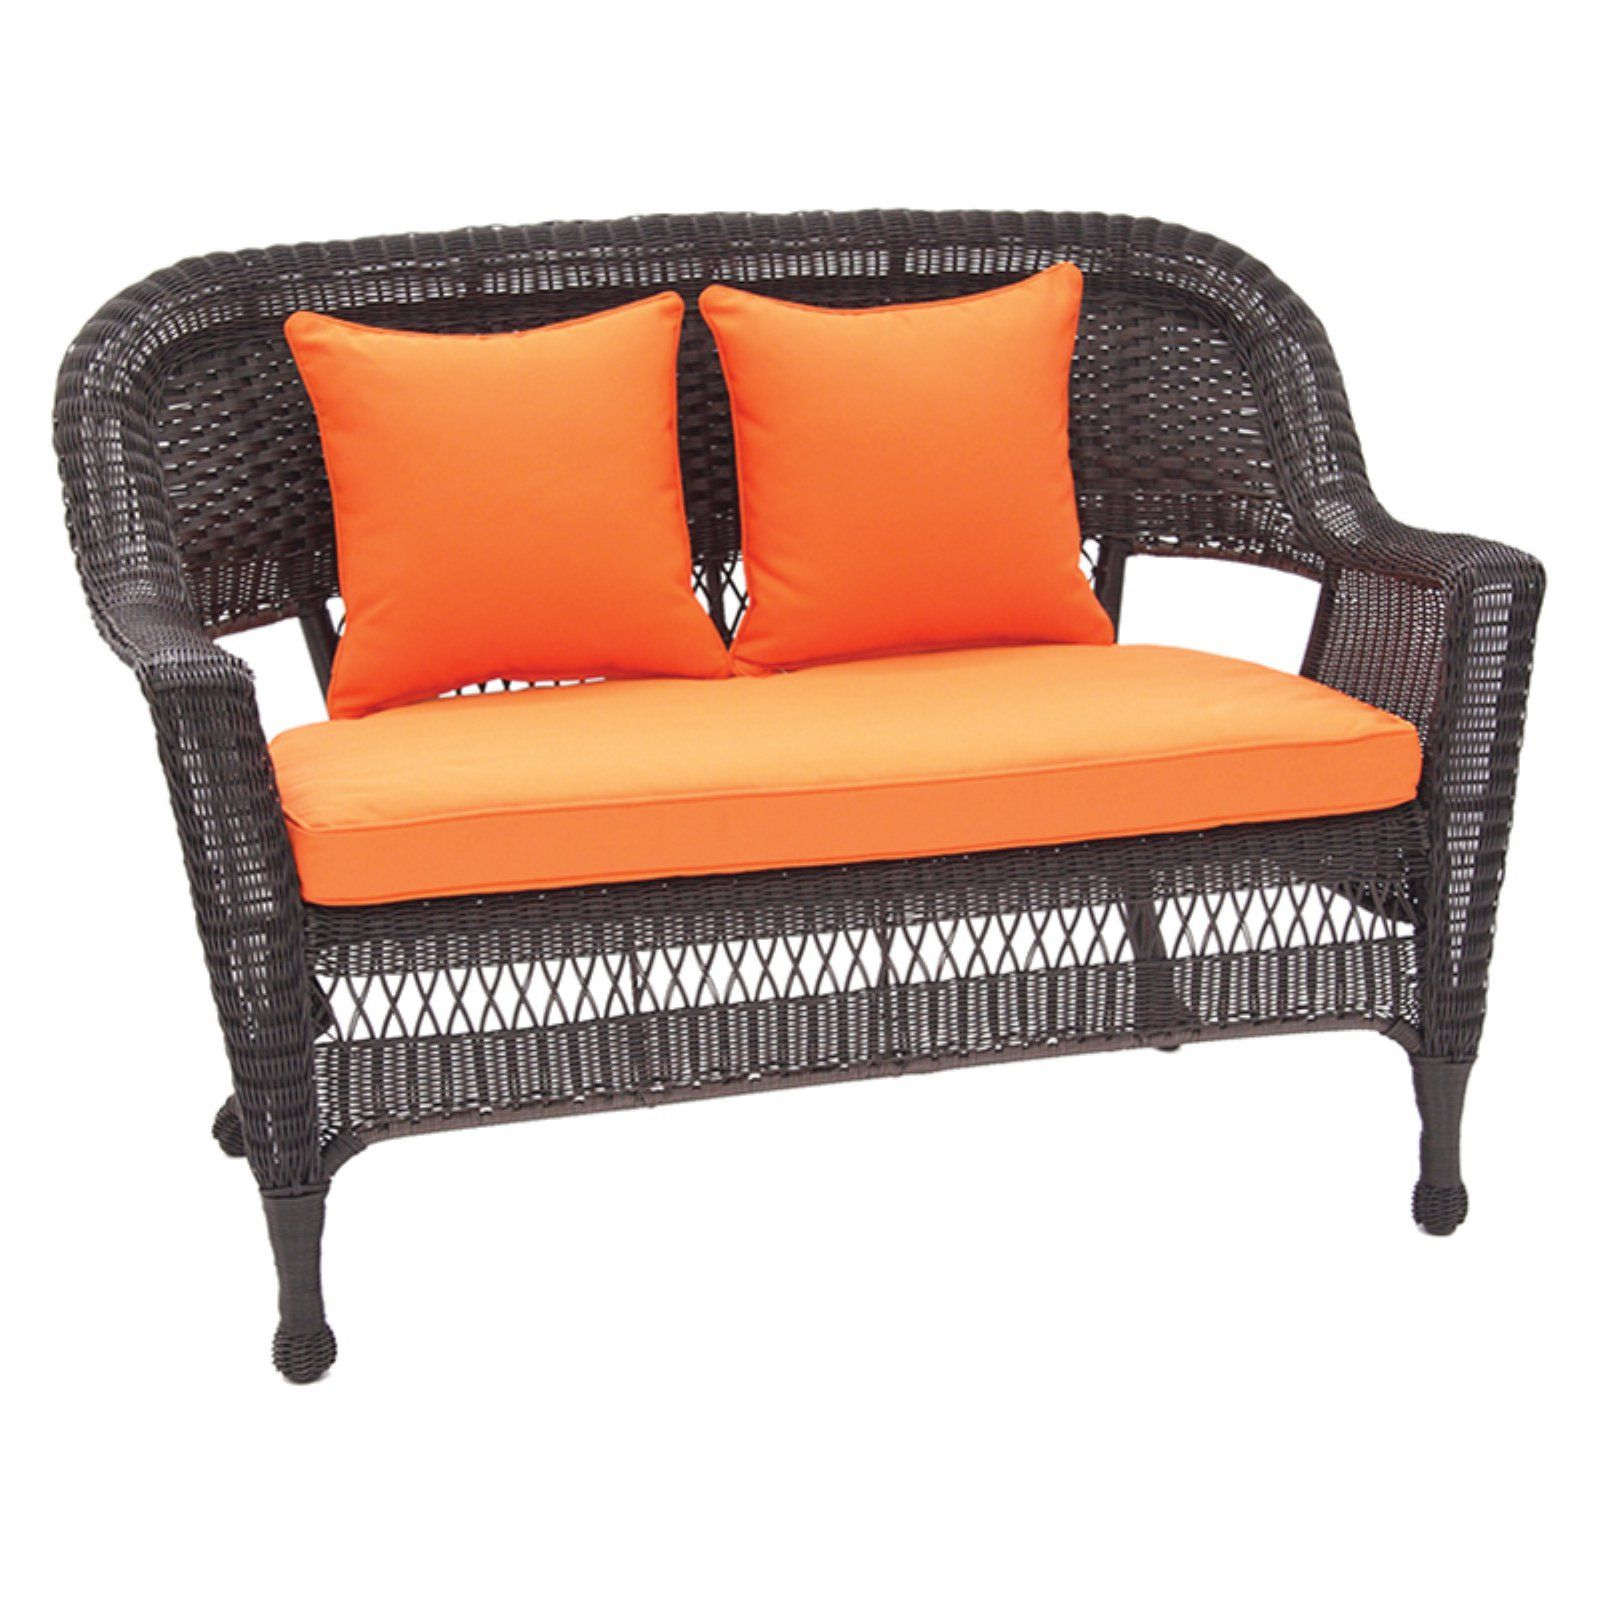 Fine Outdoor Jeco Wicker Patio Loveseat With Cushion And Pillows Theyellowbook Wood Chair Design Ideas Theyellowbookinfo